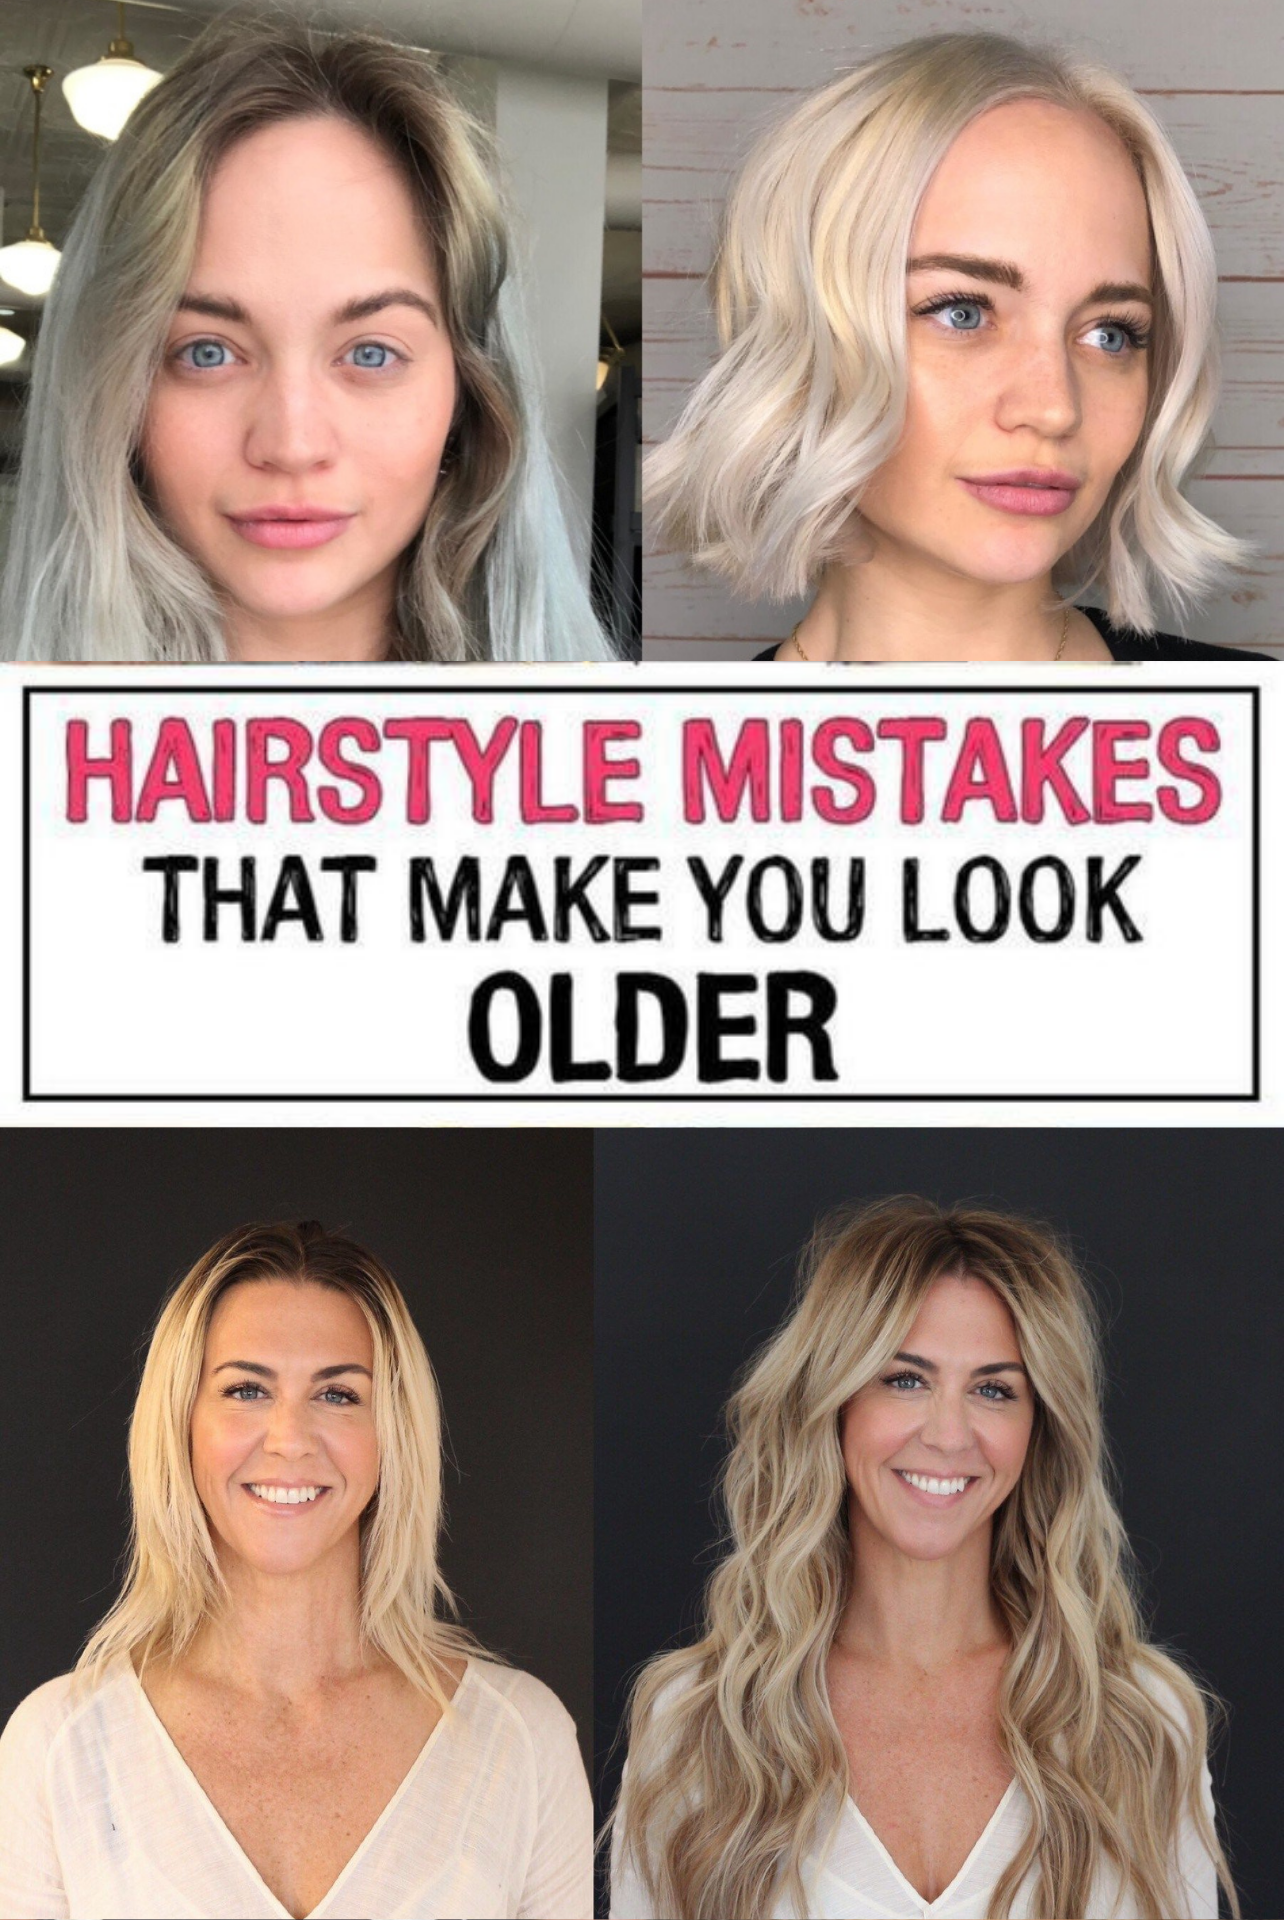 37 Hairstyle Mistakes That Are Aging You In 2020 Mom Hairstyles Hairstyle Hair Mistakes